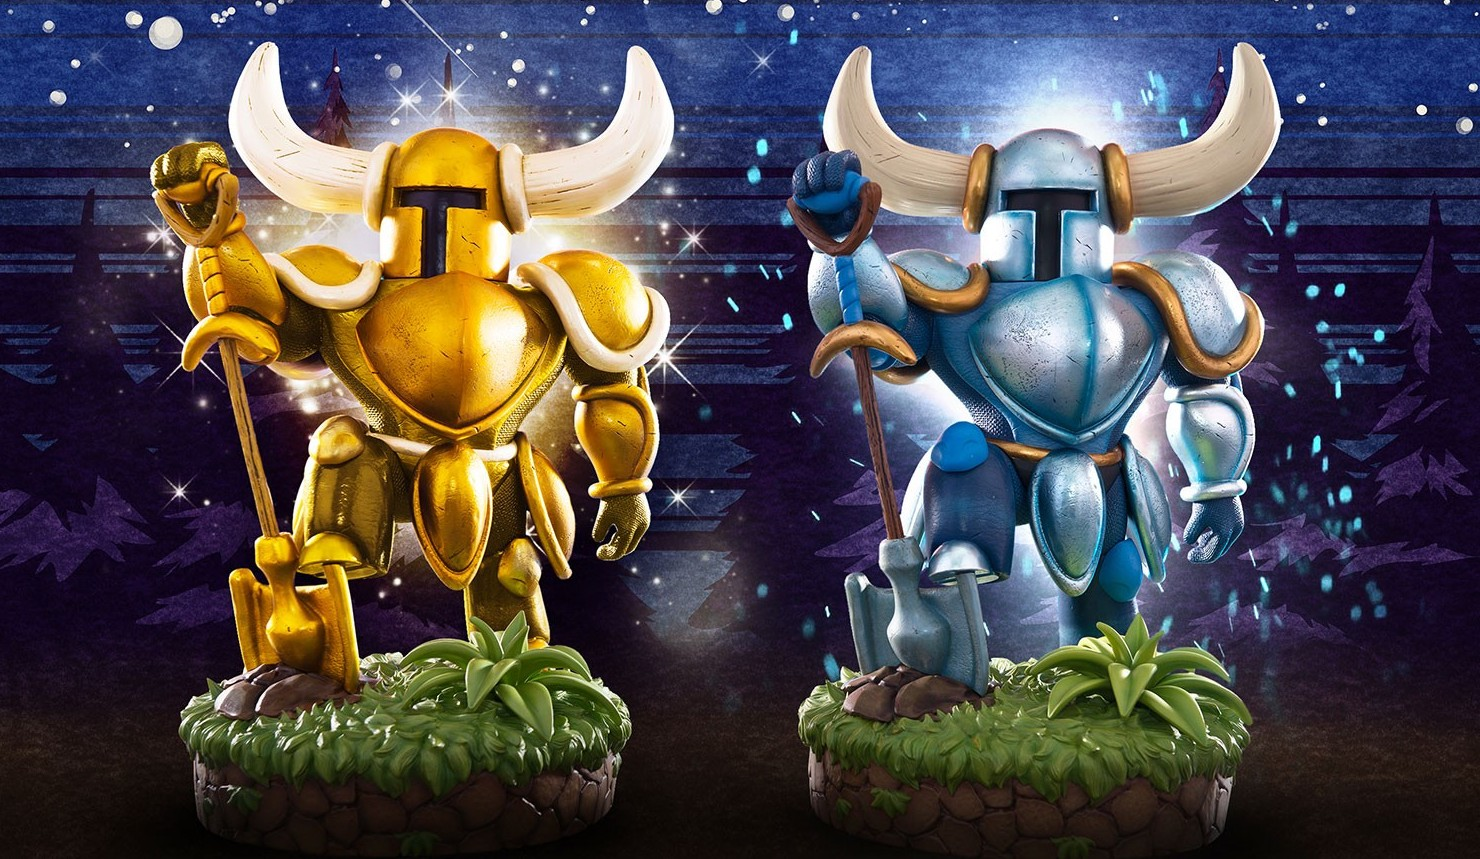 Der Shovel Knight als Sammelfigur. (Foto: First 4 Figures)